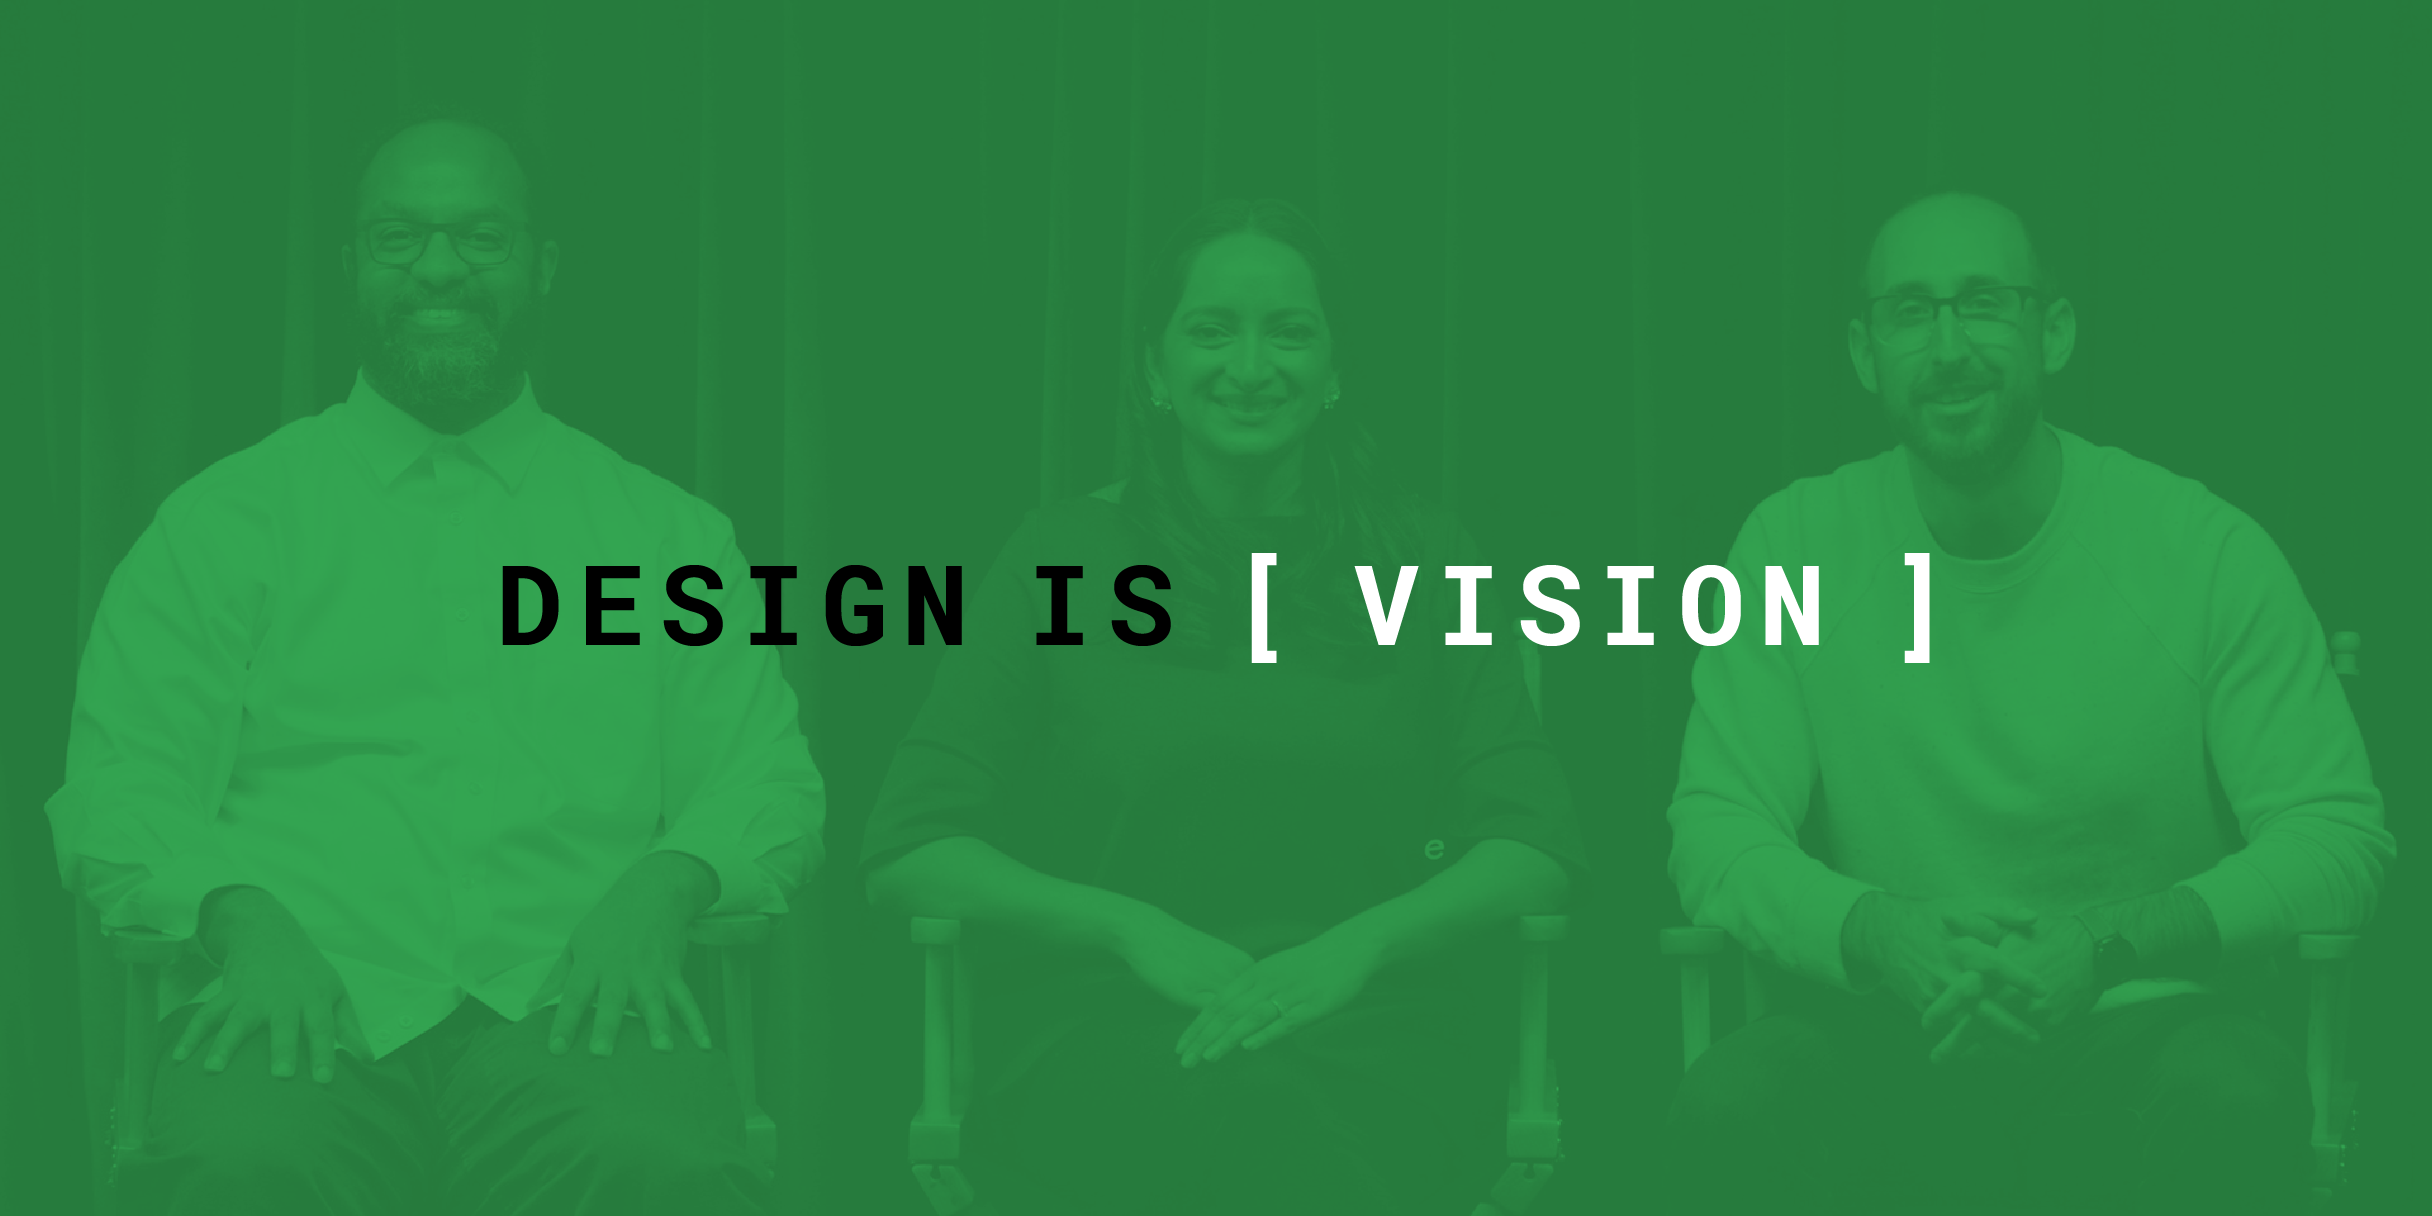 design_is_vision_2x1.png